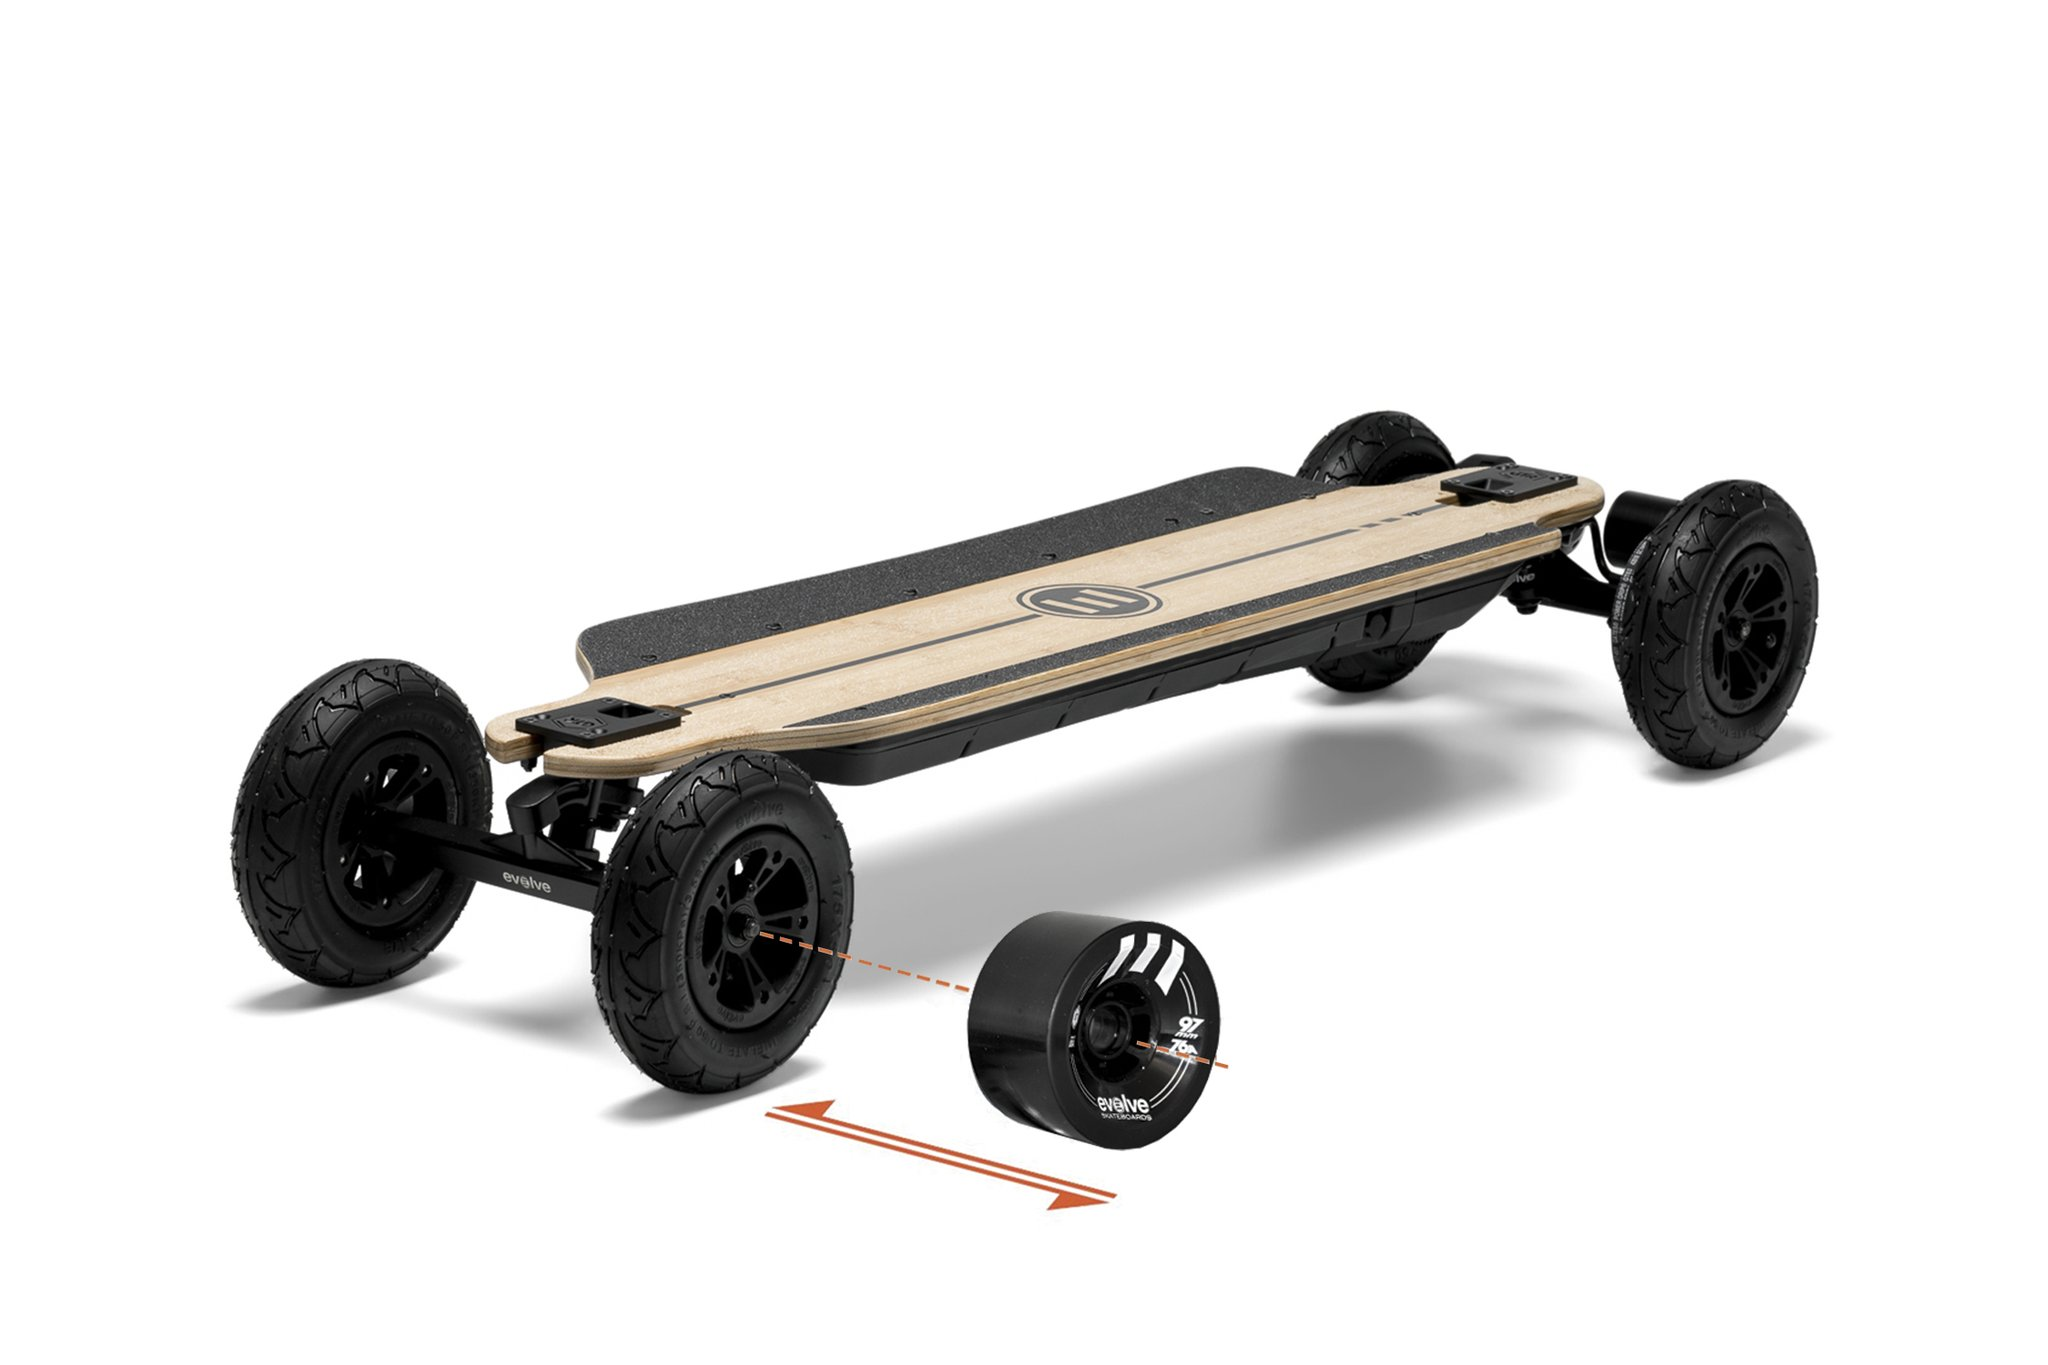 Evolve GTR Bamboo Street electric skateboard front side view with both types of black wheels on a white background